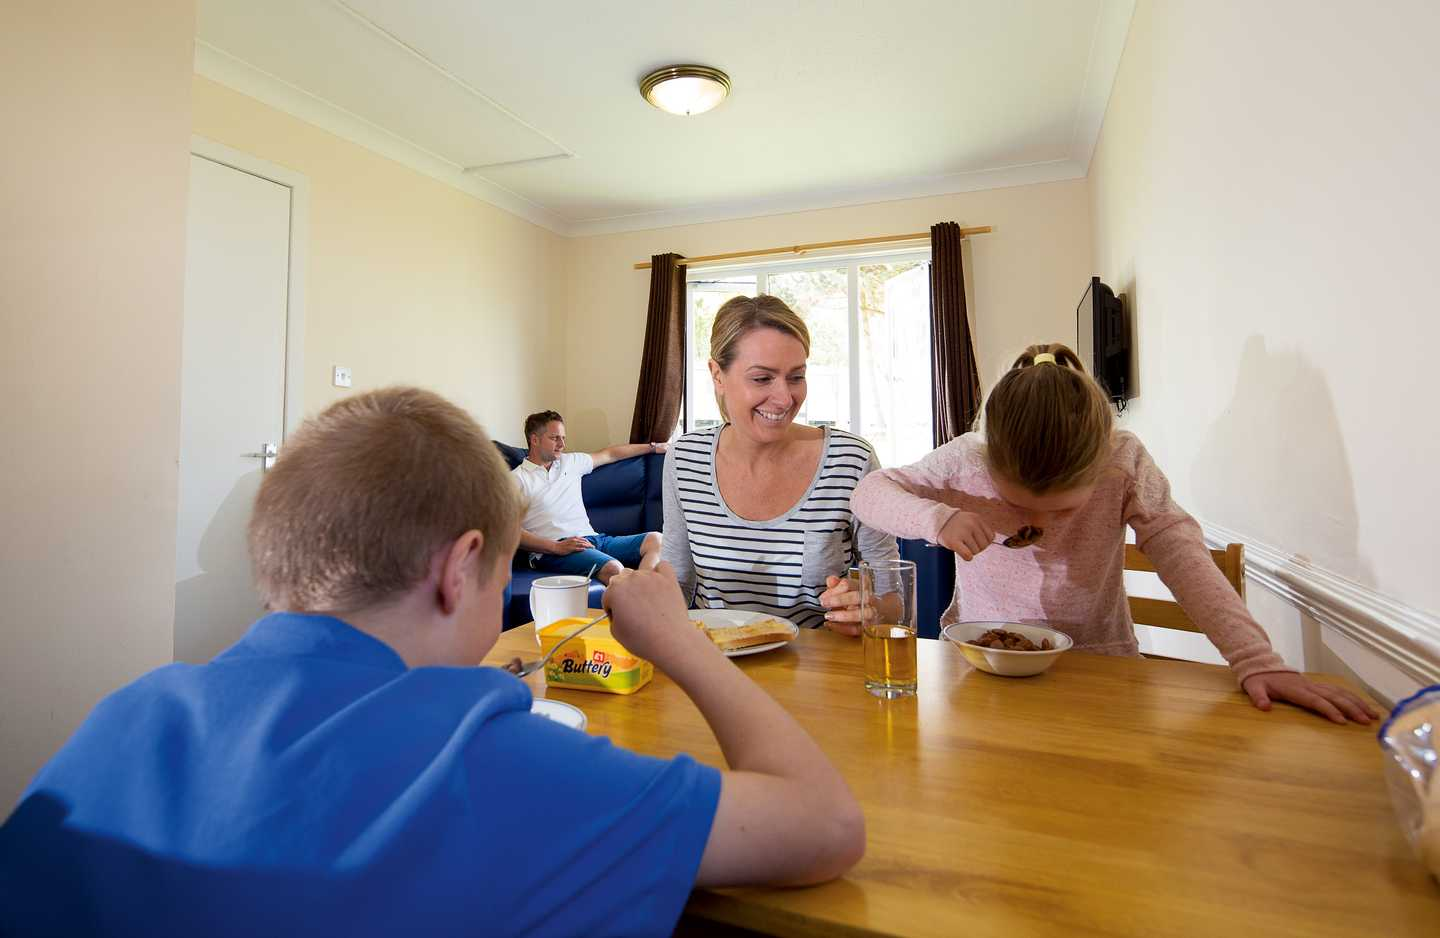 A family eating breakfast at the table in a Comfort apartment